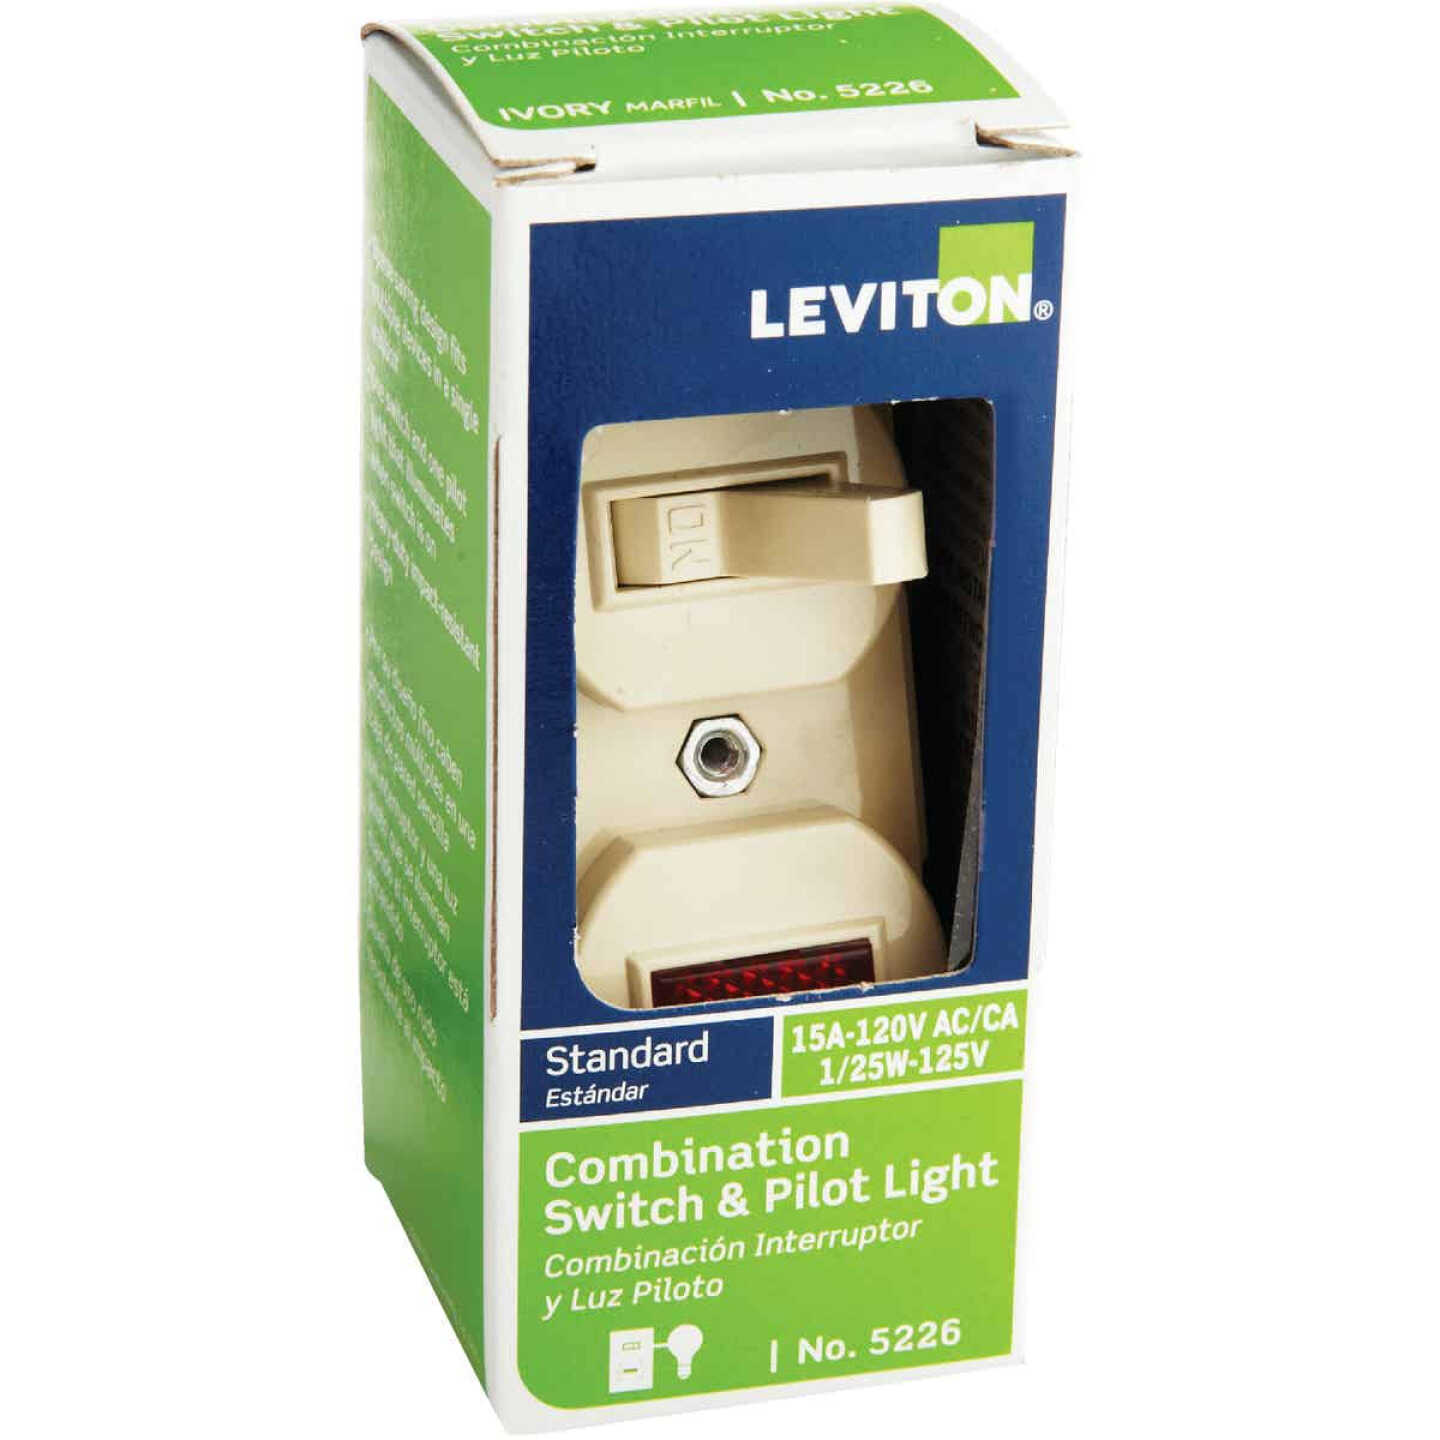 Leviton Commercial Grade Ivory 15A Switch & Pilot Light Image 2